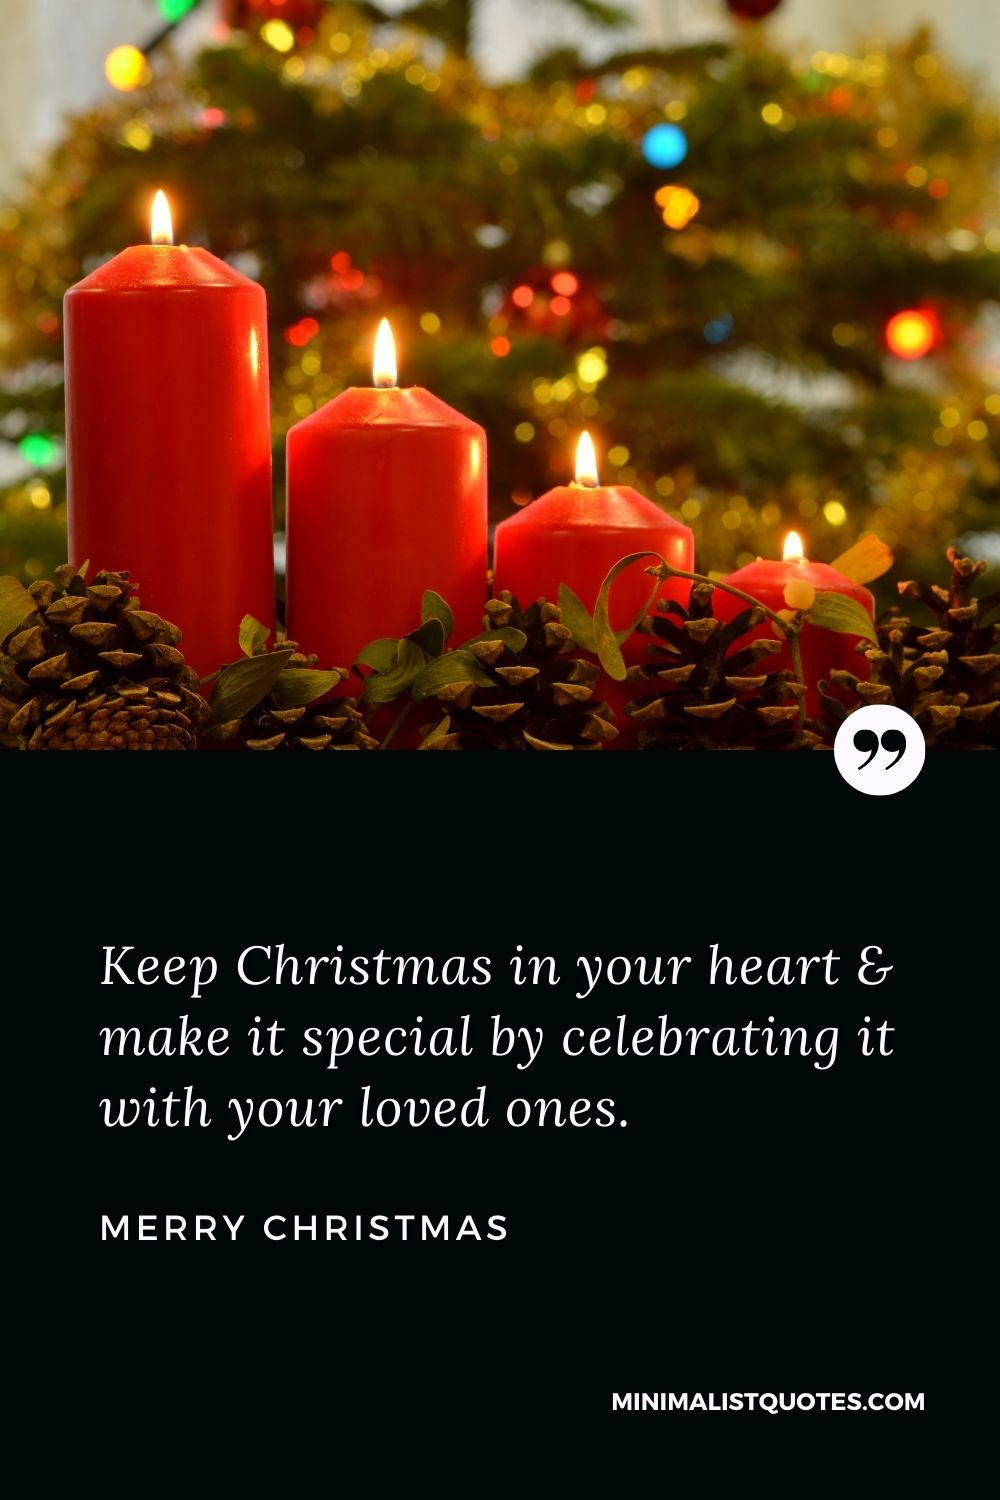 Merry Christmas Wish - Keep Christmas in your heart & make it specialby celebratingit with your lovedones.